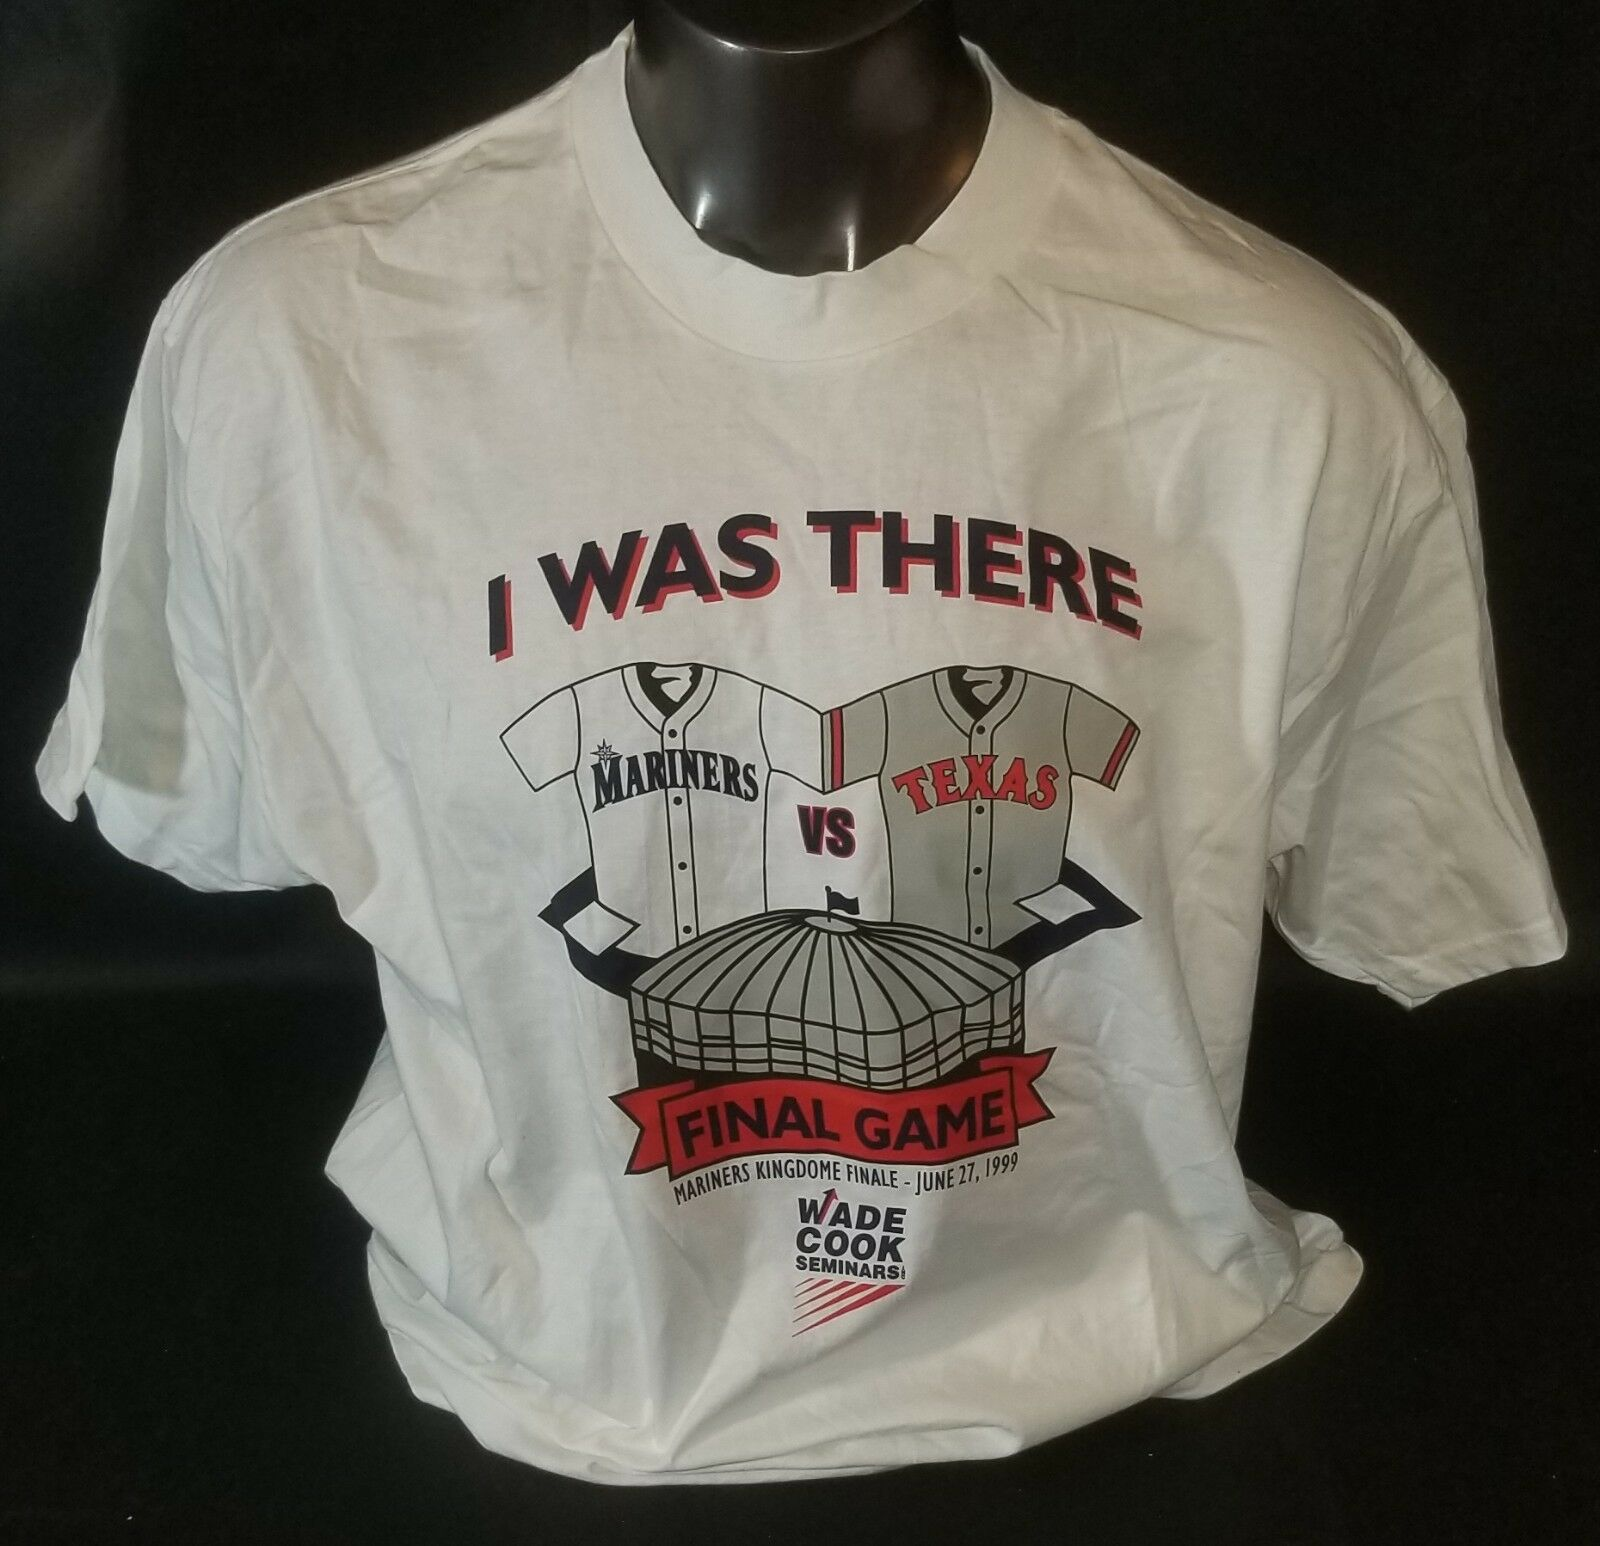 Vintage Seattle Mariners Kingdome Final Game 1999 I Was There TShirt XL Griffey